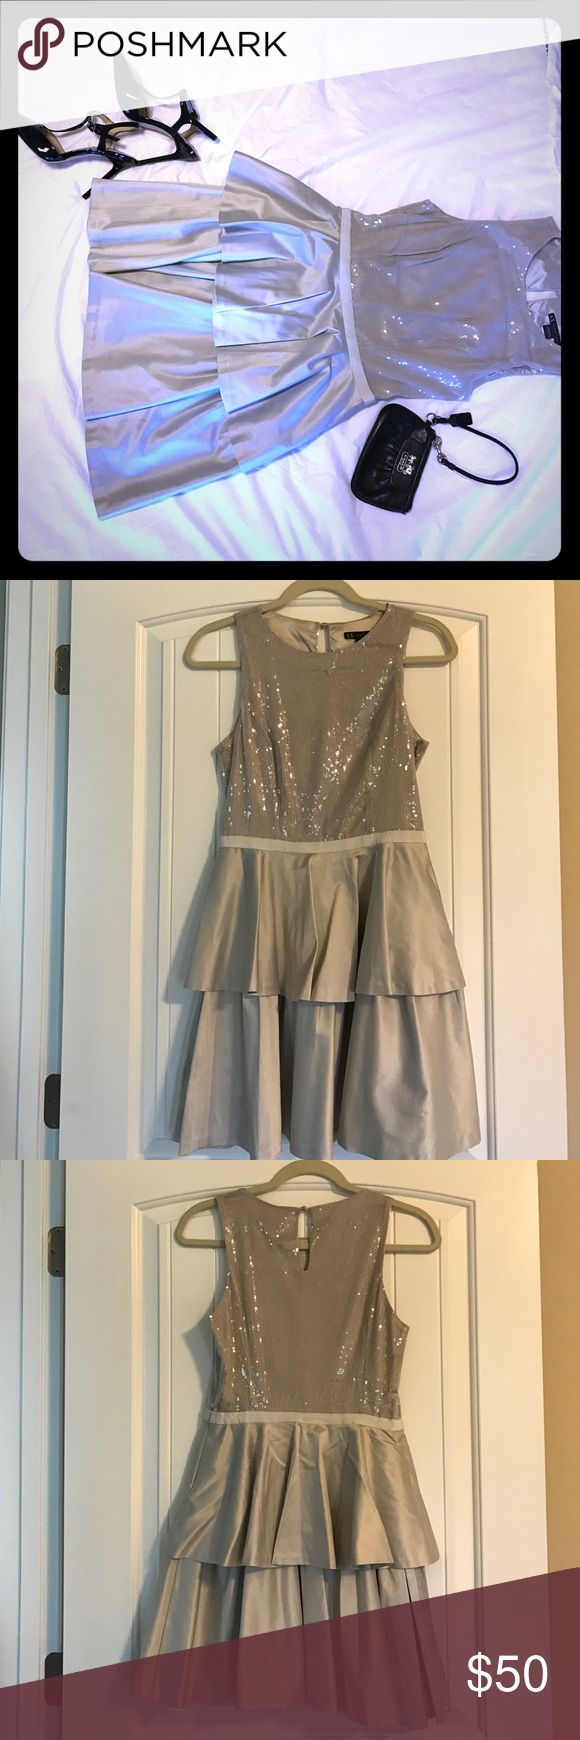 "Silver silk and sequins dress Perfect for the holidays coming up! This sleeveless silver silk and sequins dress has adorable 2 layer skirt and a sequins top for the perfect ""wow"" factor! In excellent condition! A/X Armani Exchange Dresses Mini"